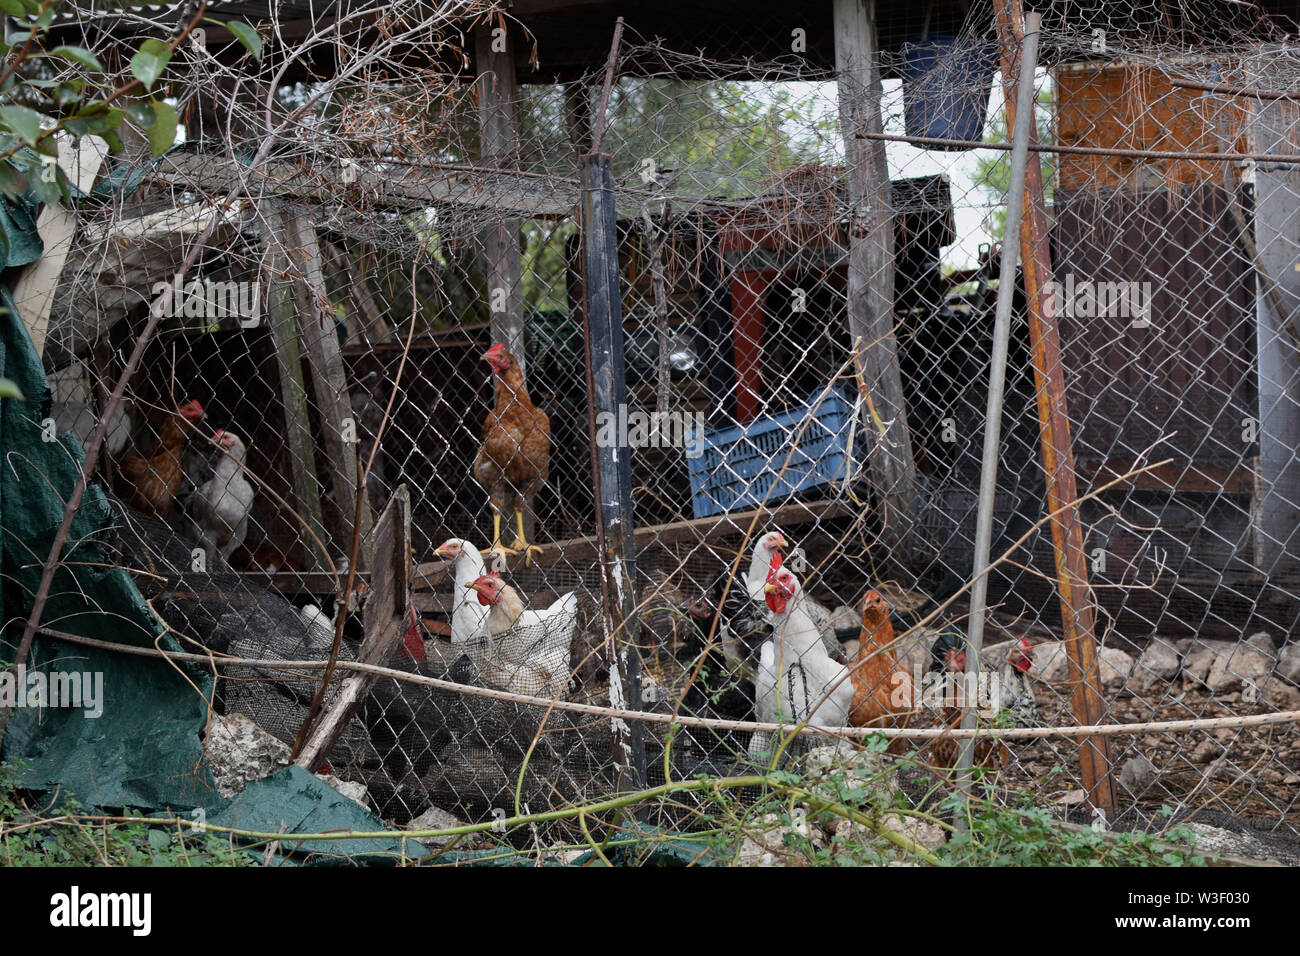 Free range poultry nesting in rusty shack. Makeshift chicken coop. - Stock Image